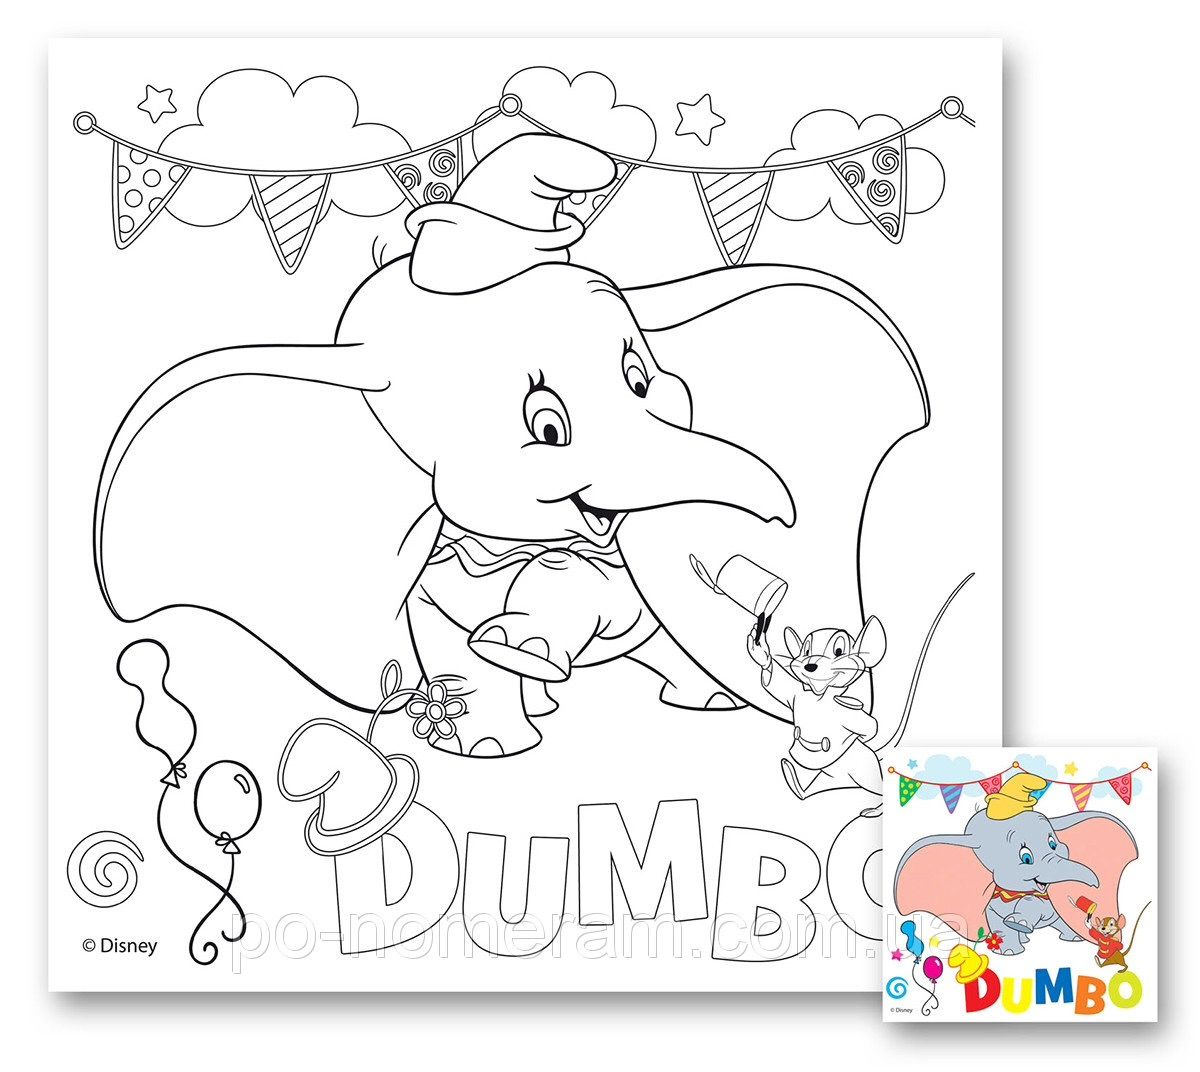 Pin by MajaMørkholt on Dumbo Coloring Pages   Pinterest